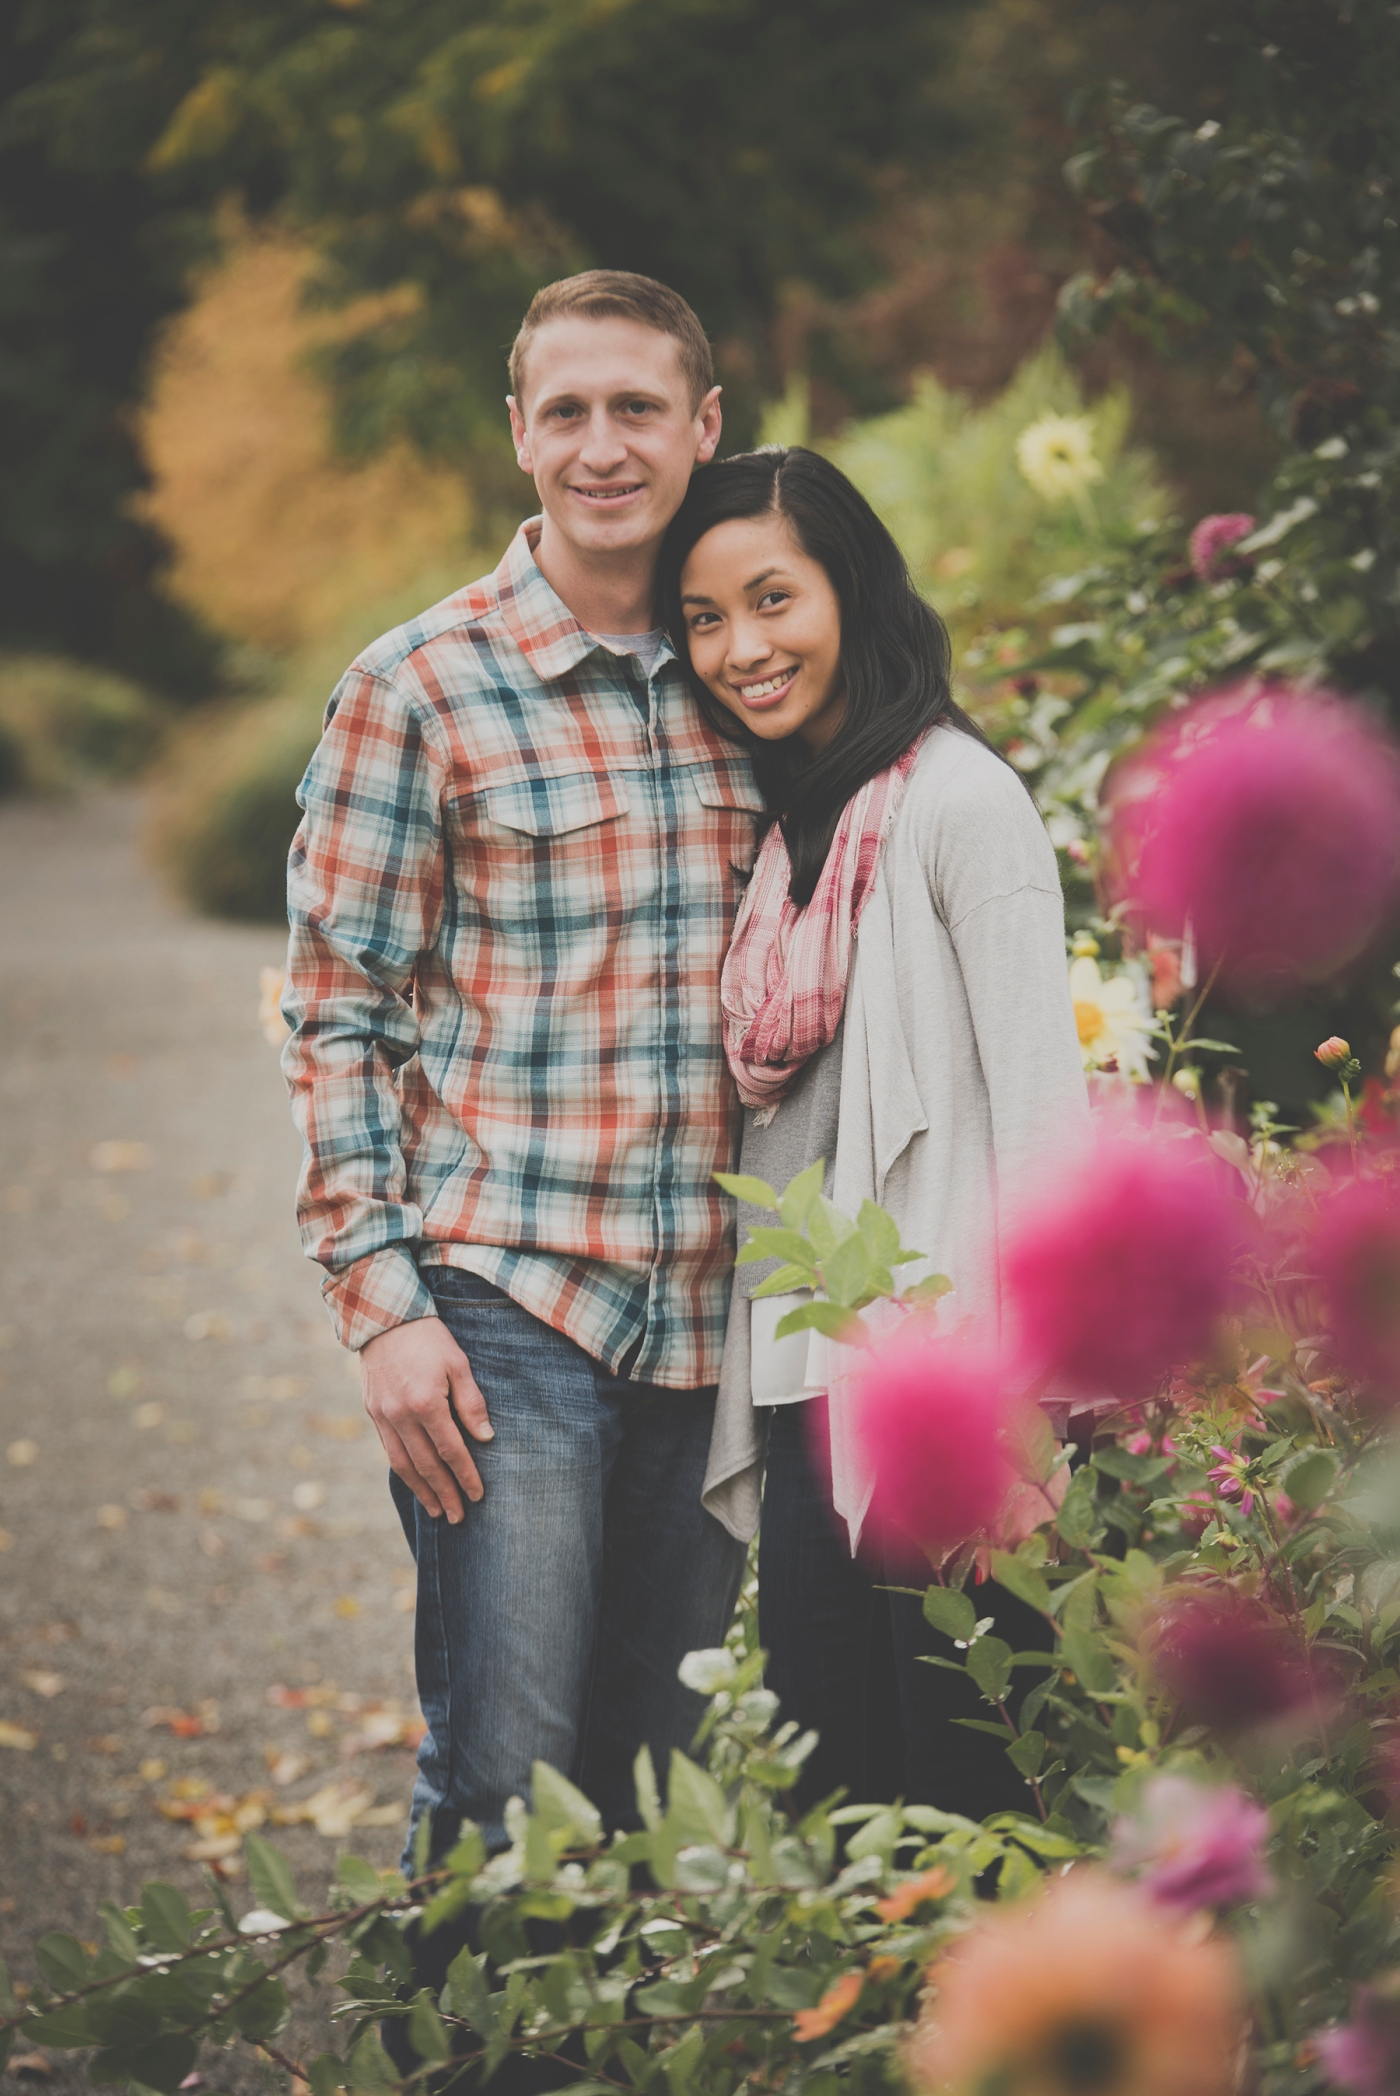 jane-speleers-photography-ju-bri-holiday-october-bellevue-botanical-garden-engagement-2016_dsc_5640